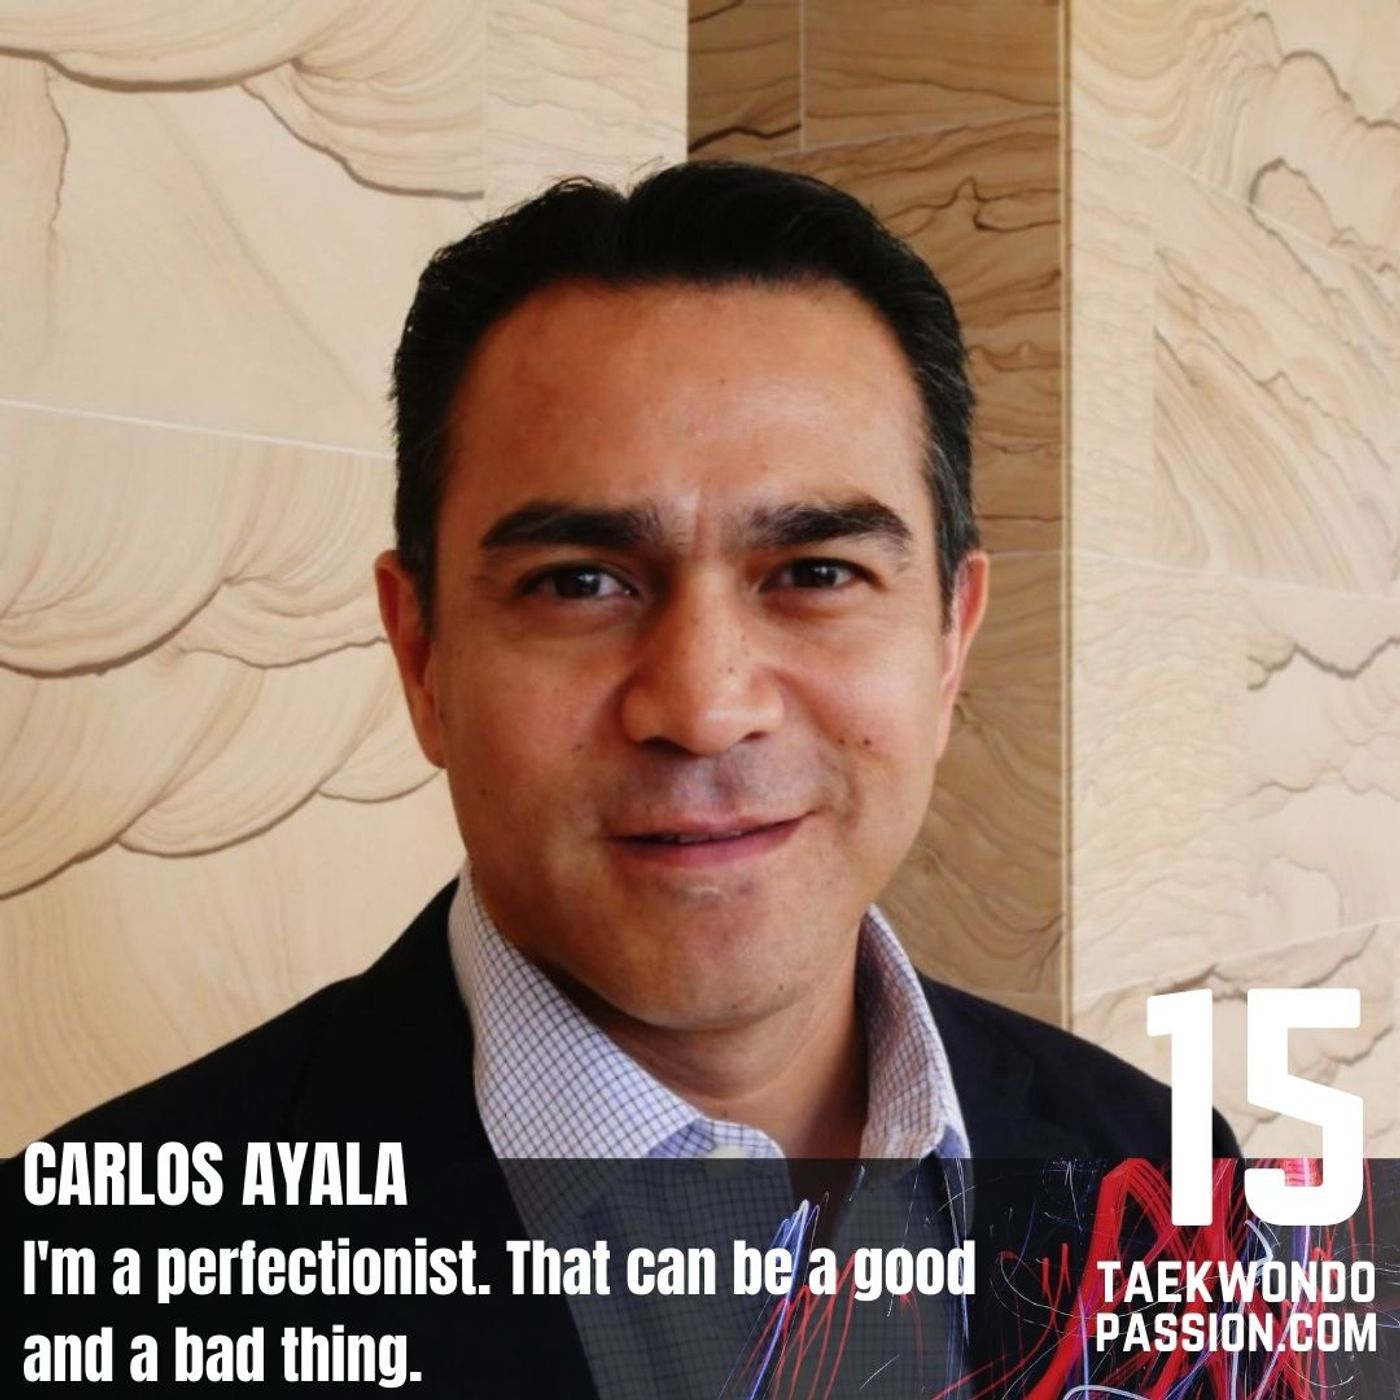 Carlos Ayala - I'm a perfectionst. That can be a good and a bad thing.